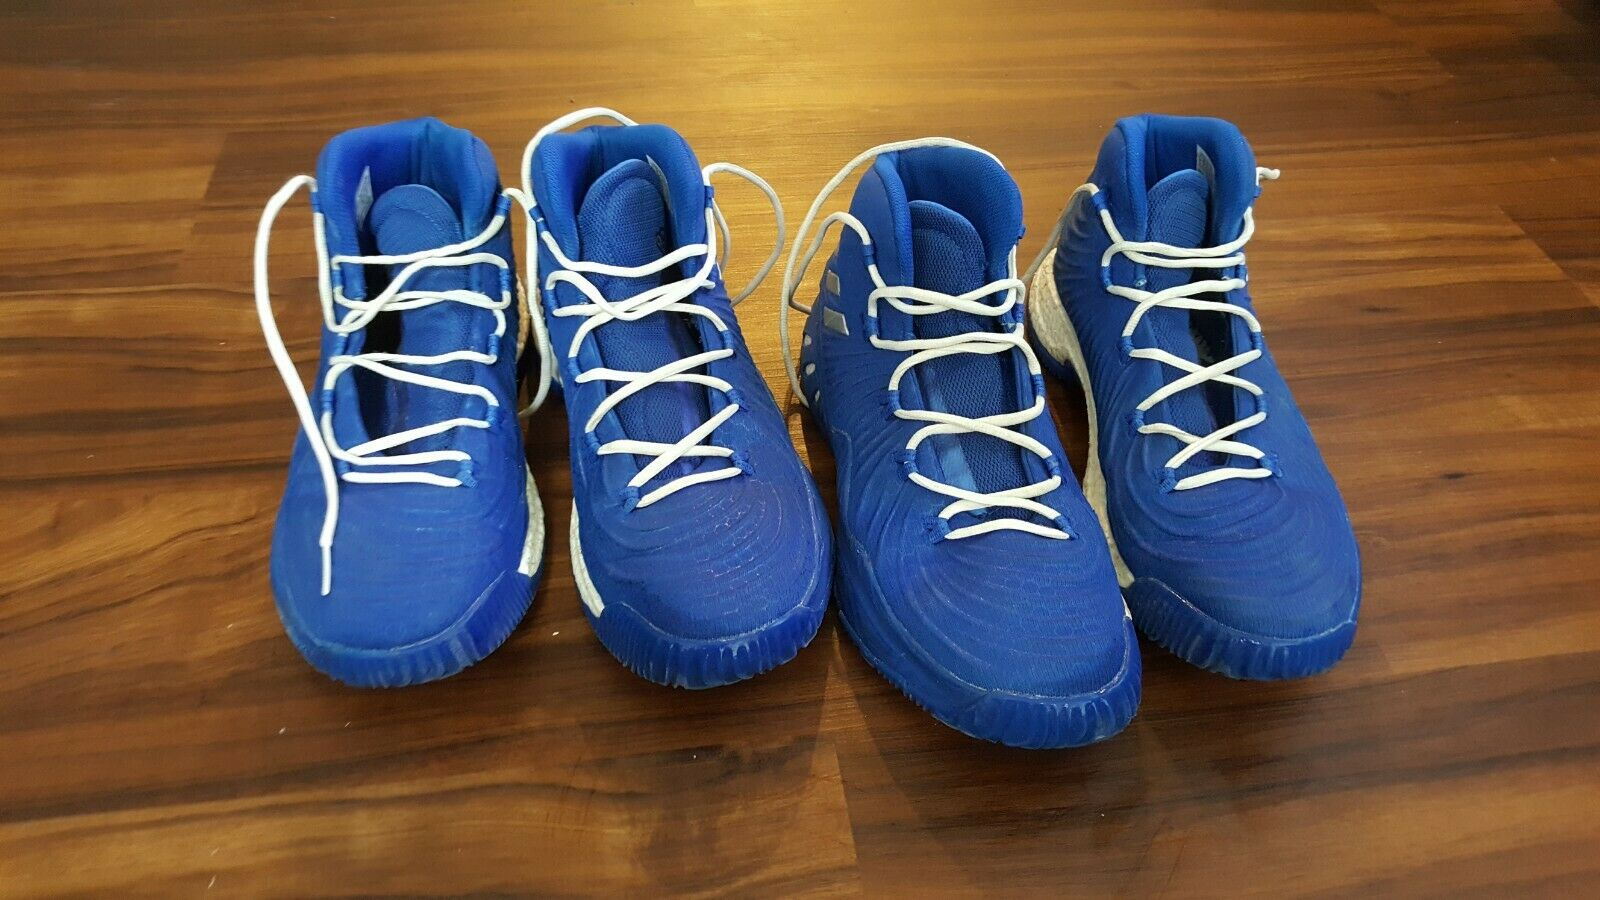 Adidas BY3770 Basketball shoes Crazy Explosive 2017 Royal blueee White 14.5 15